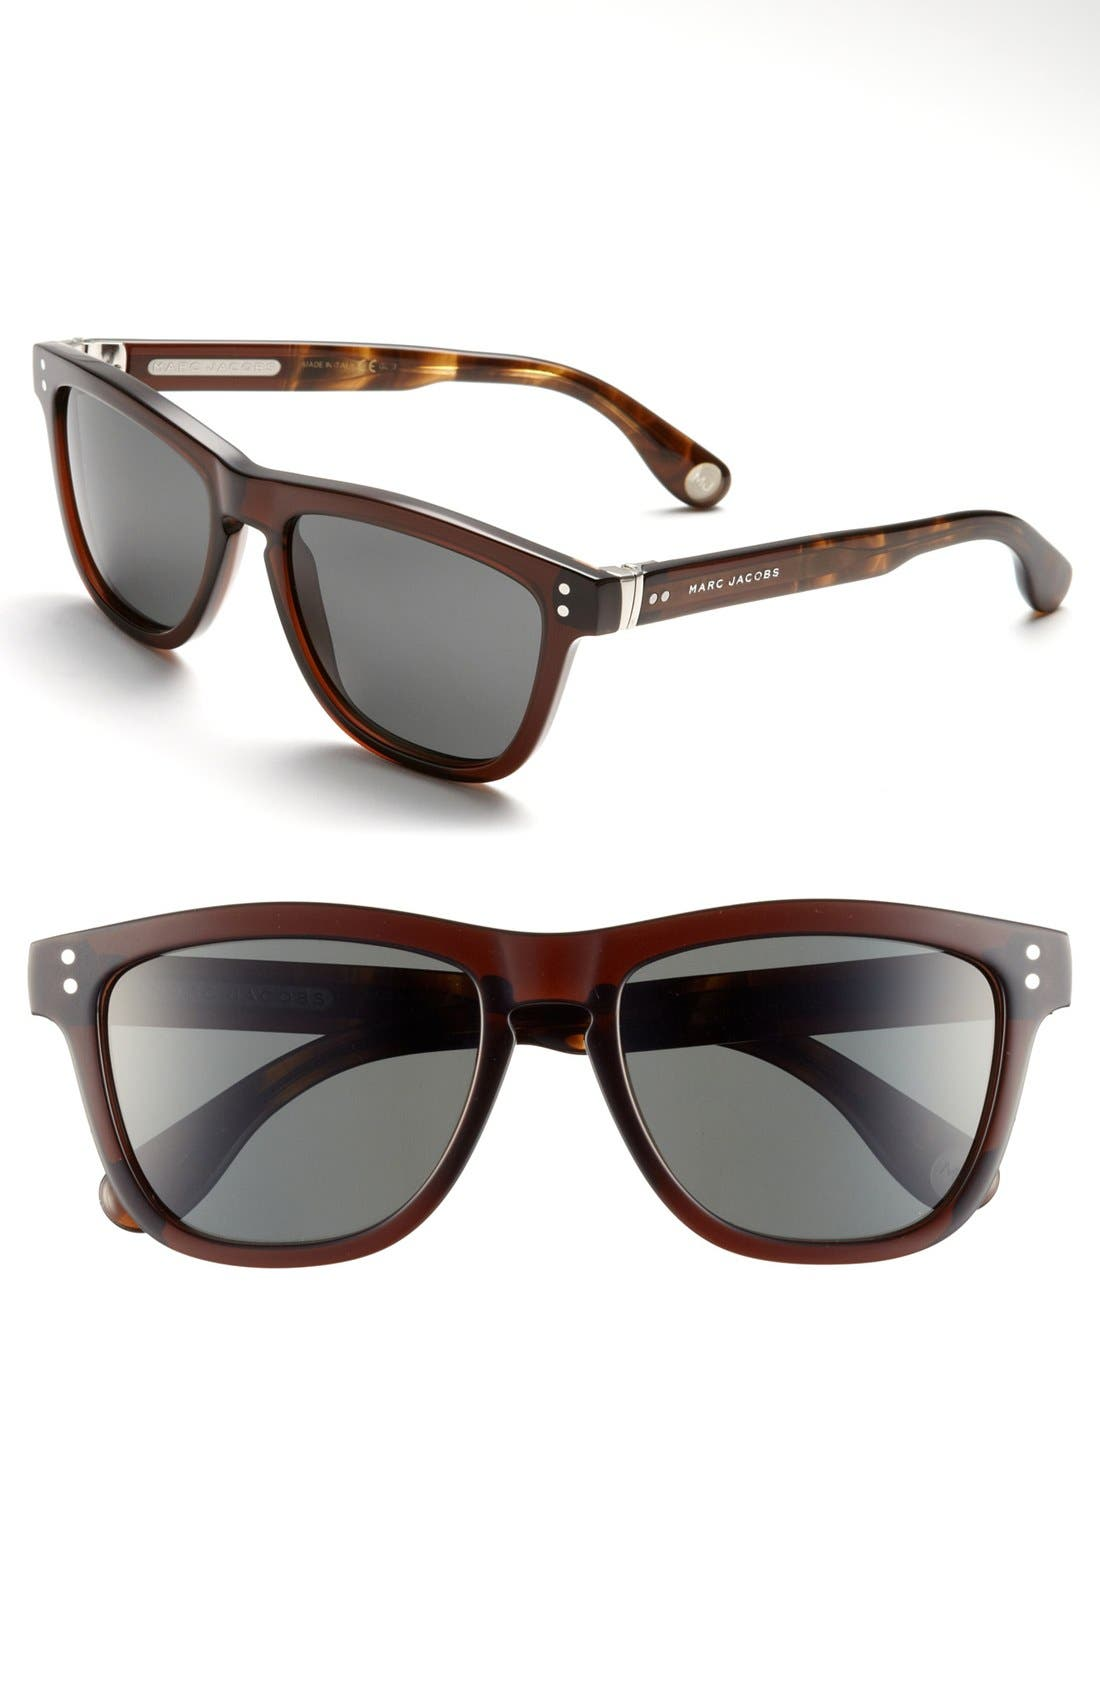 Alternate Image 1 Selected - MARC JACOBS 55mm Retro Sunglasses